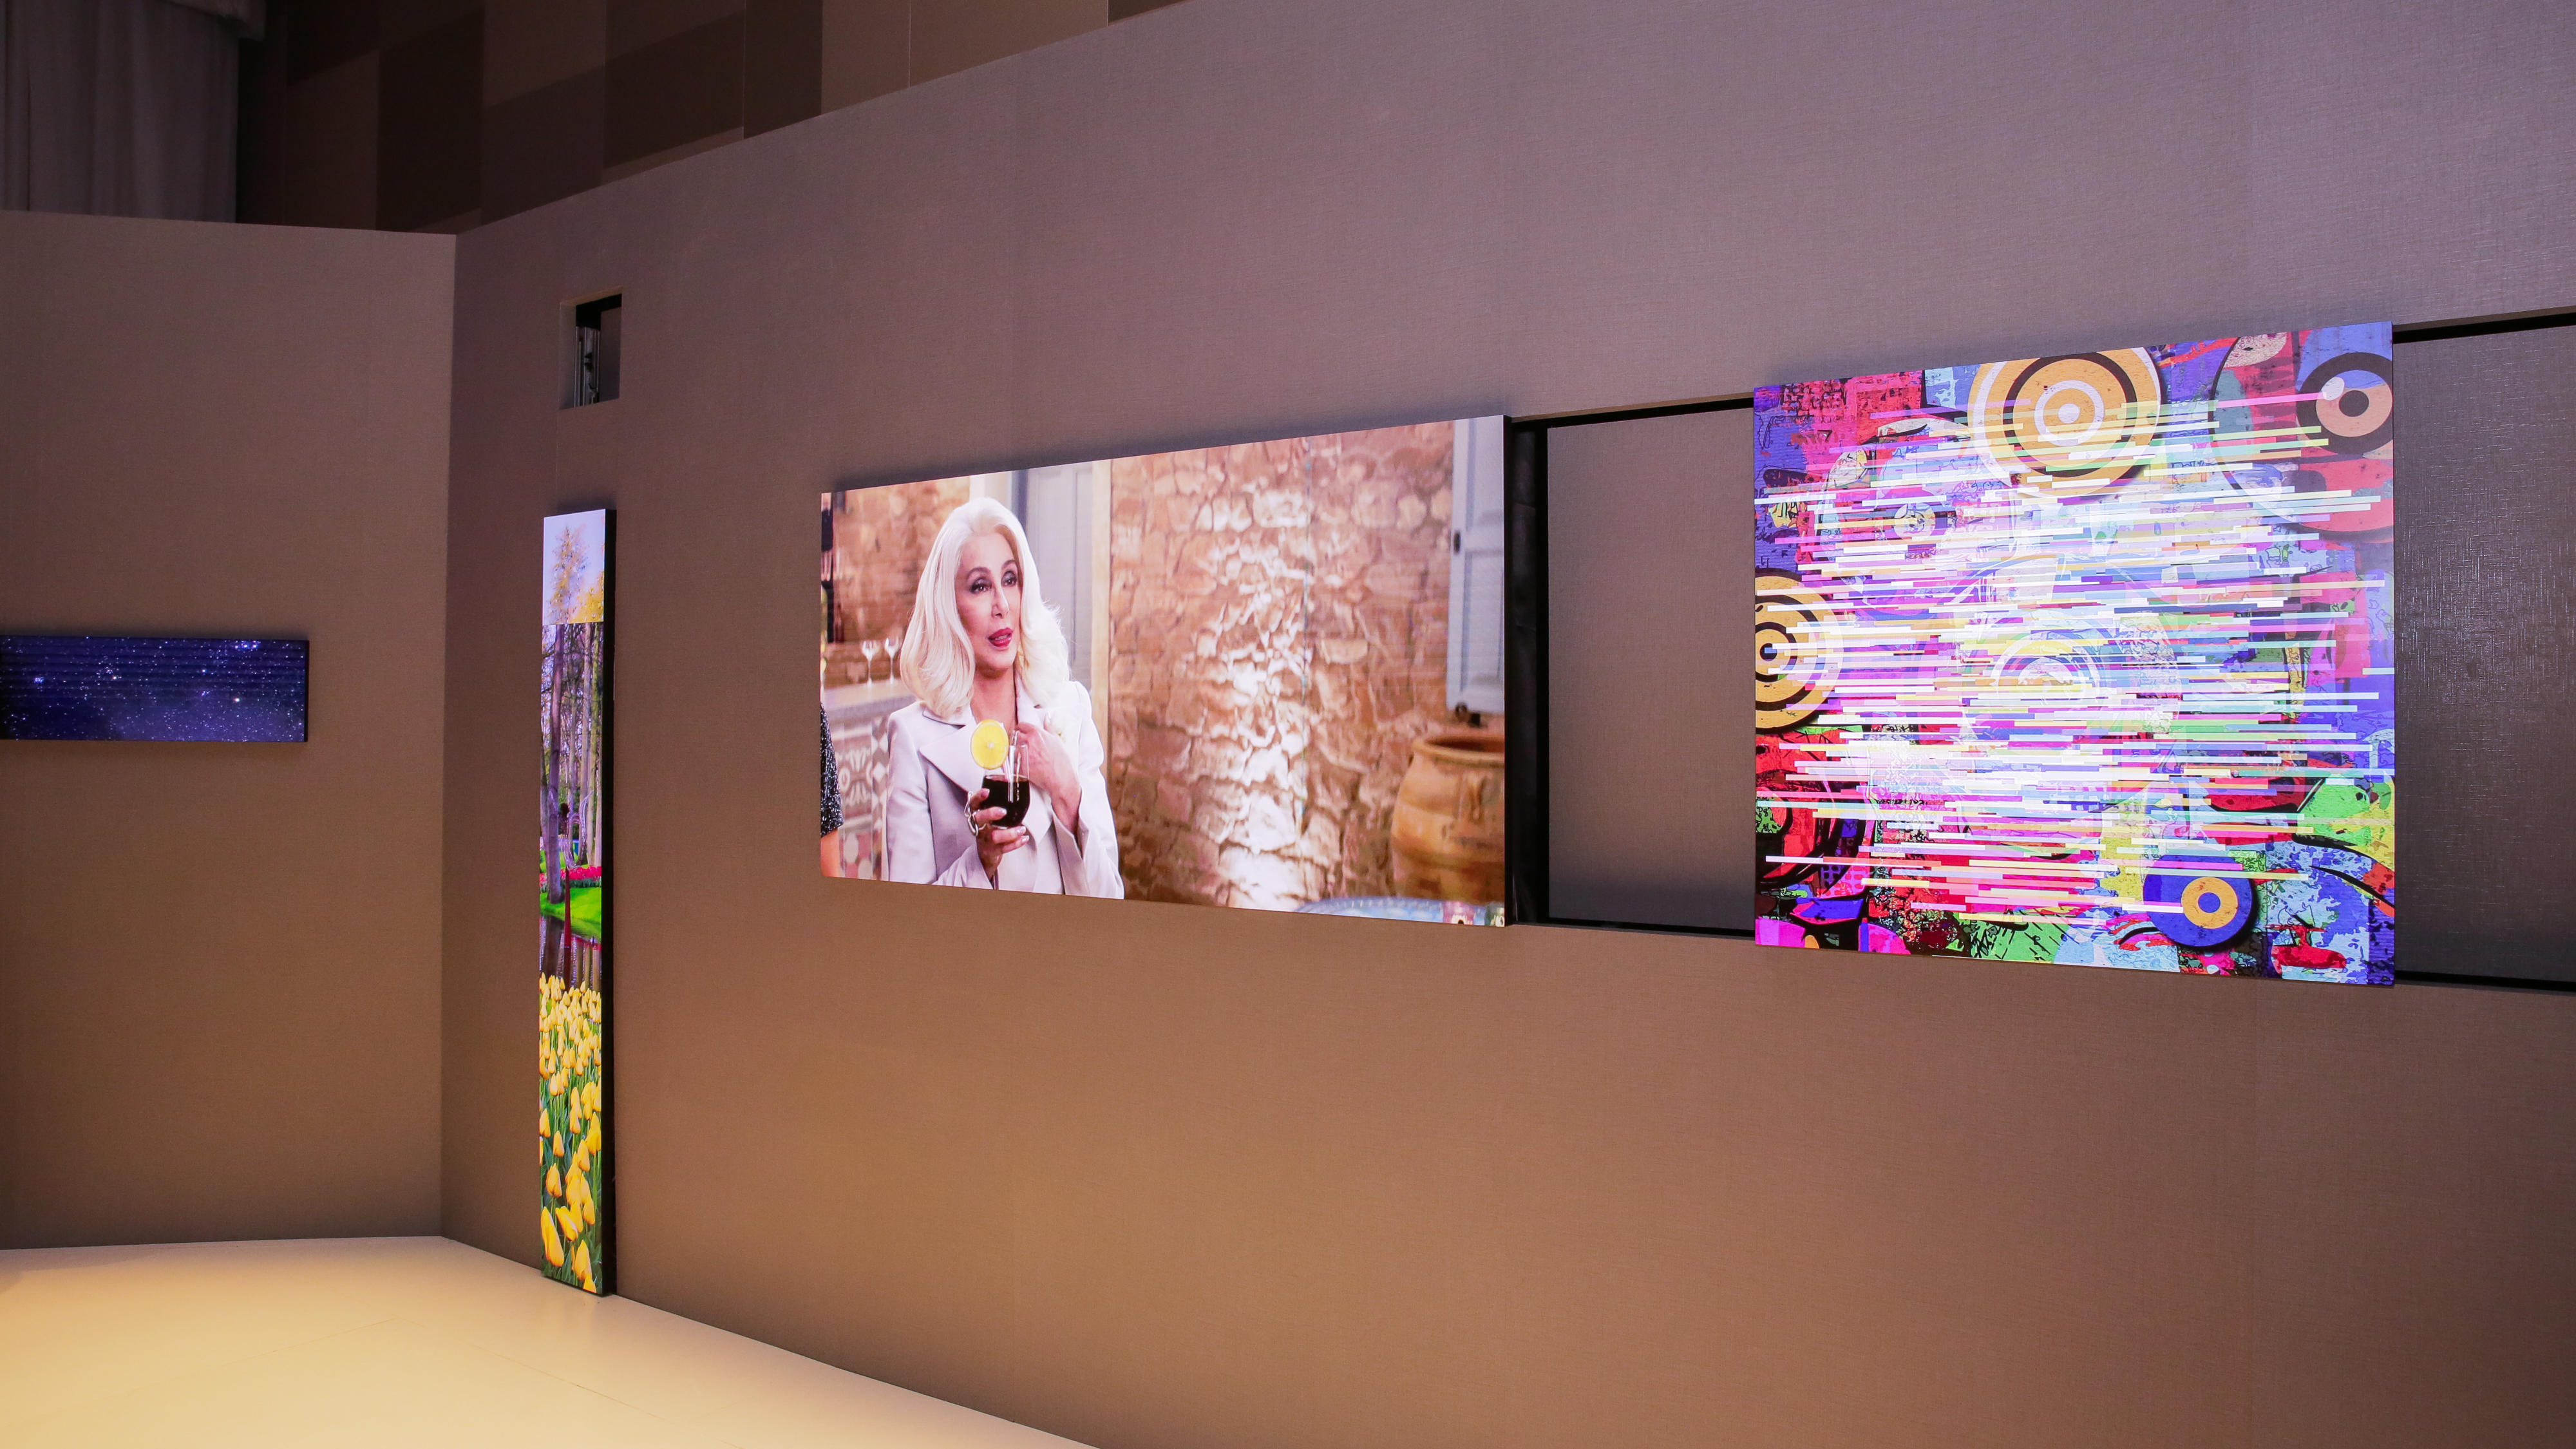 Samsung Micro LED The Wall CES 2019